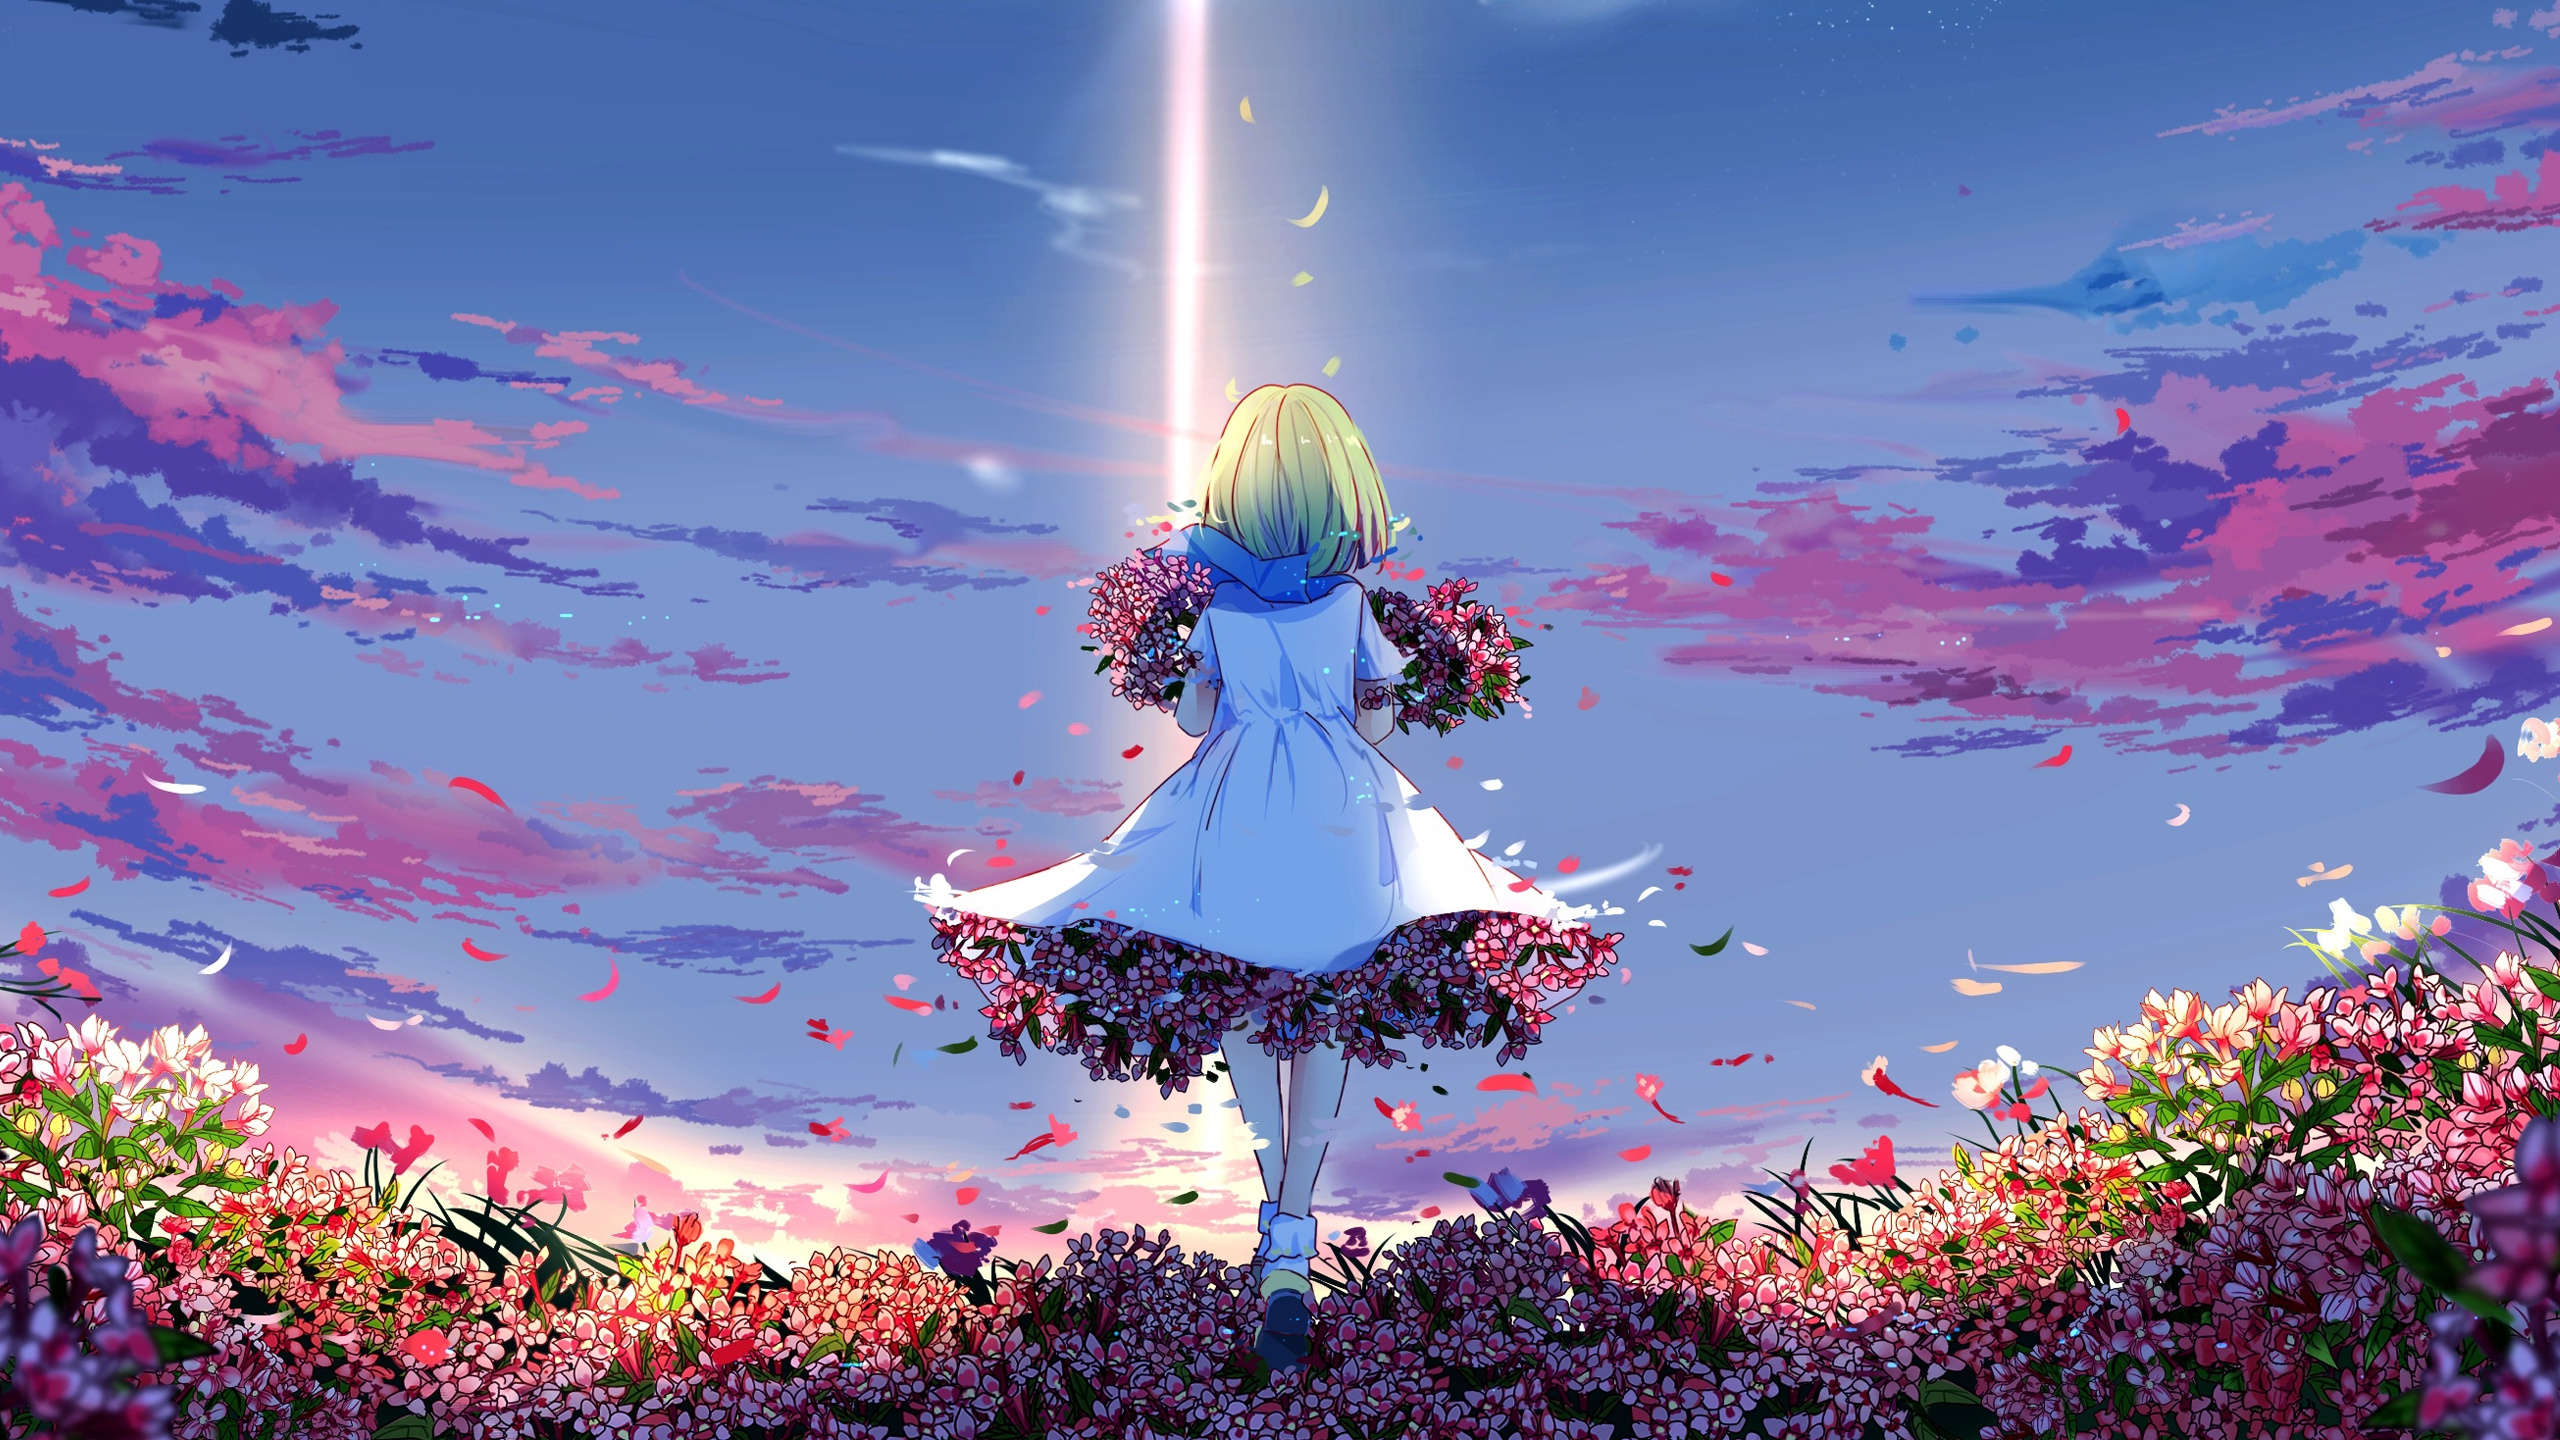 Download Anime girl spring flowers girly outdoor wallpaper 2560x1440